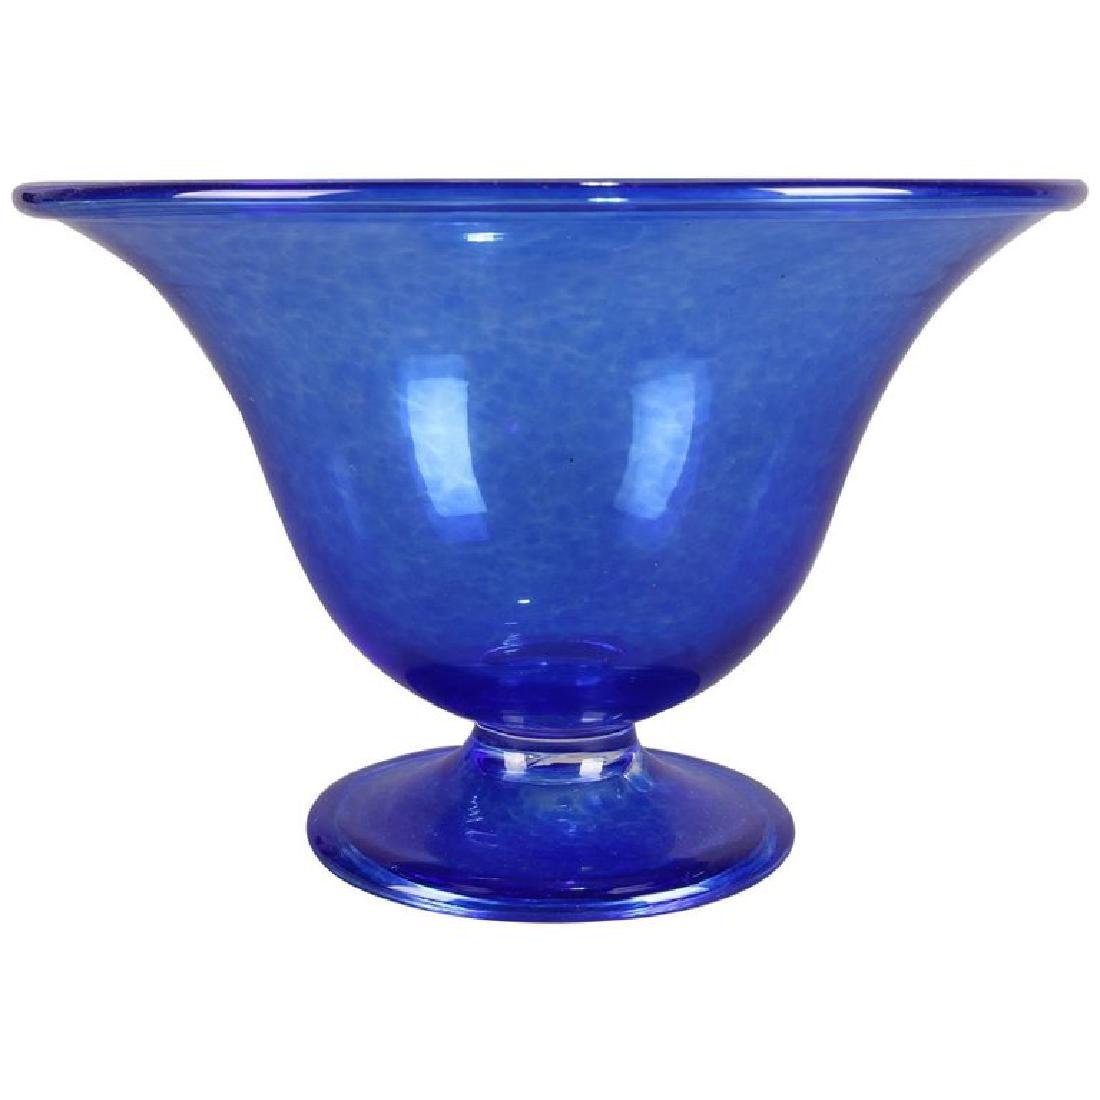 Steuben's Corning Museum of Glass Cobalt Blown Compote